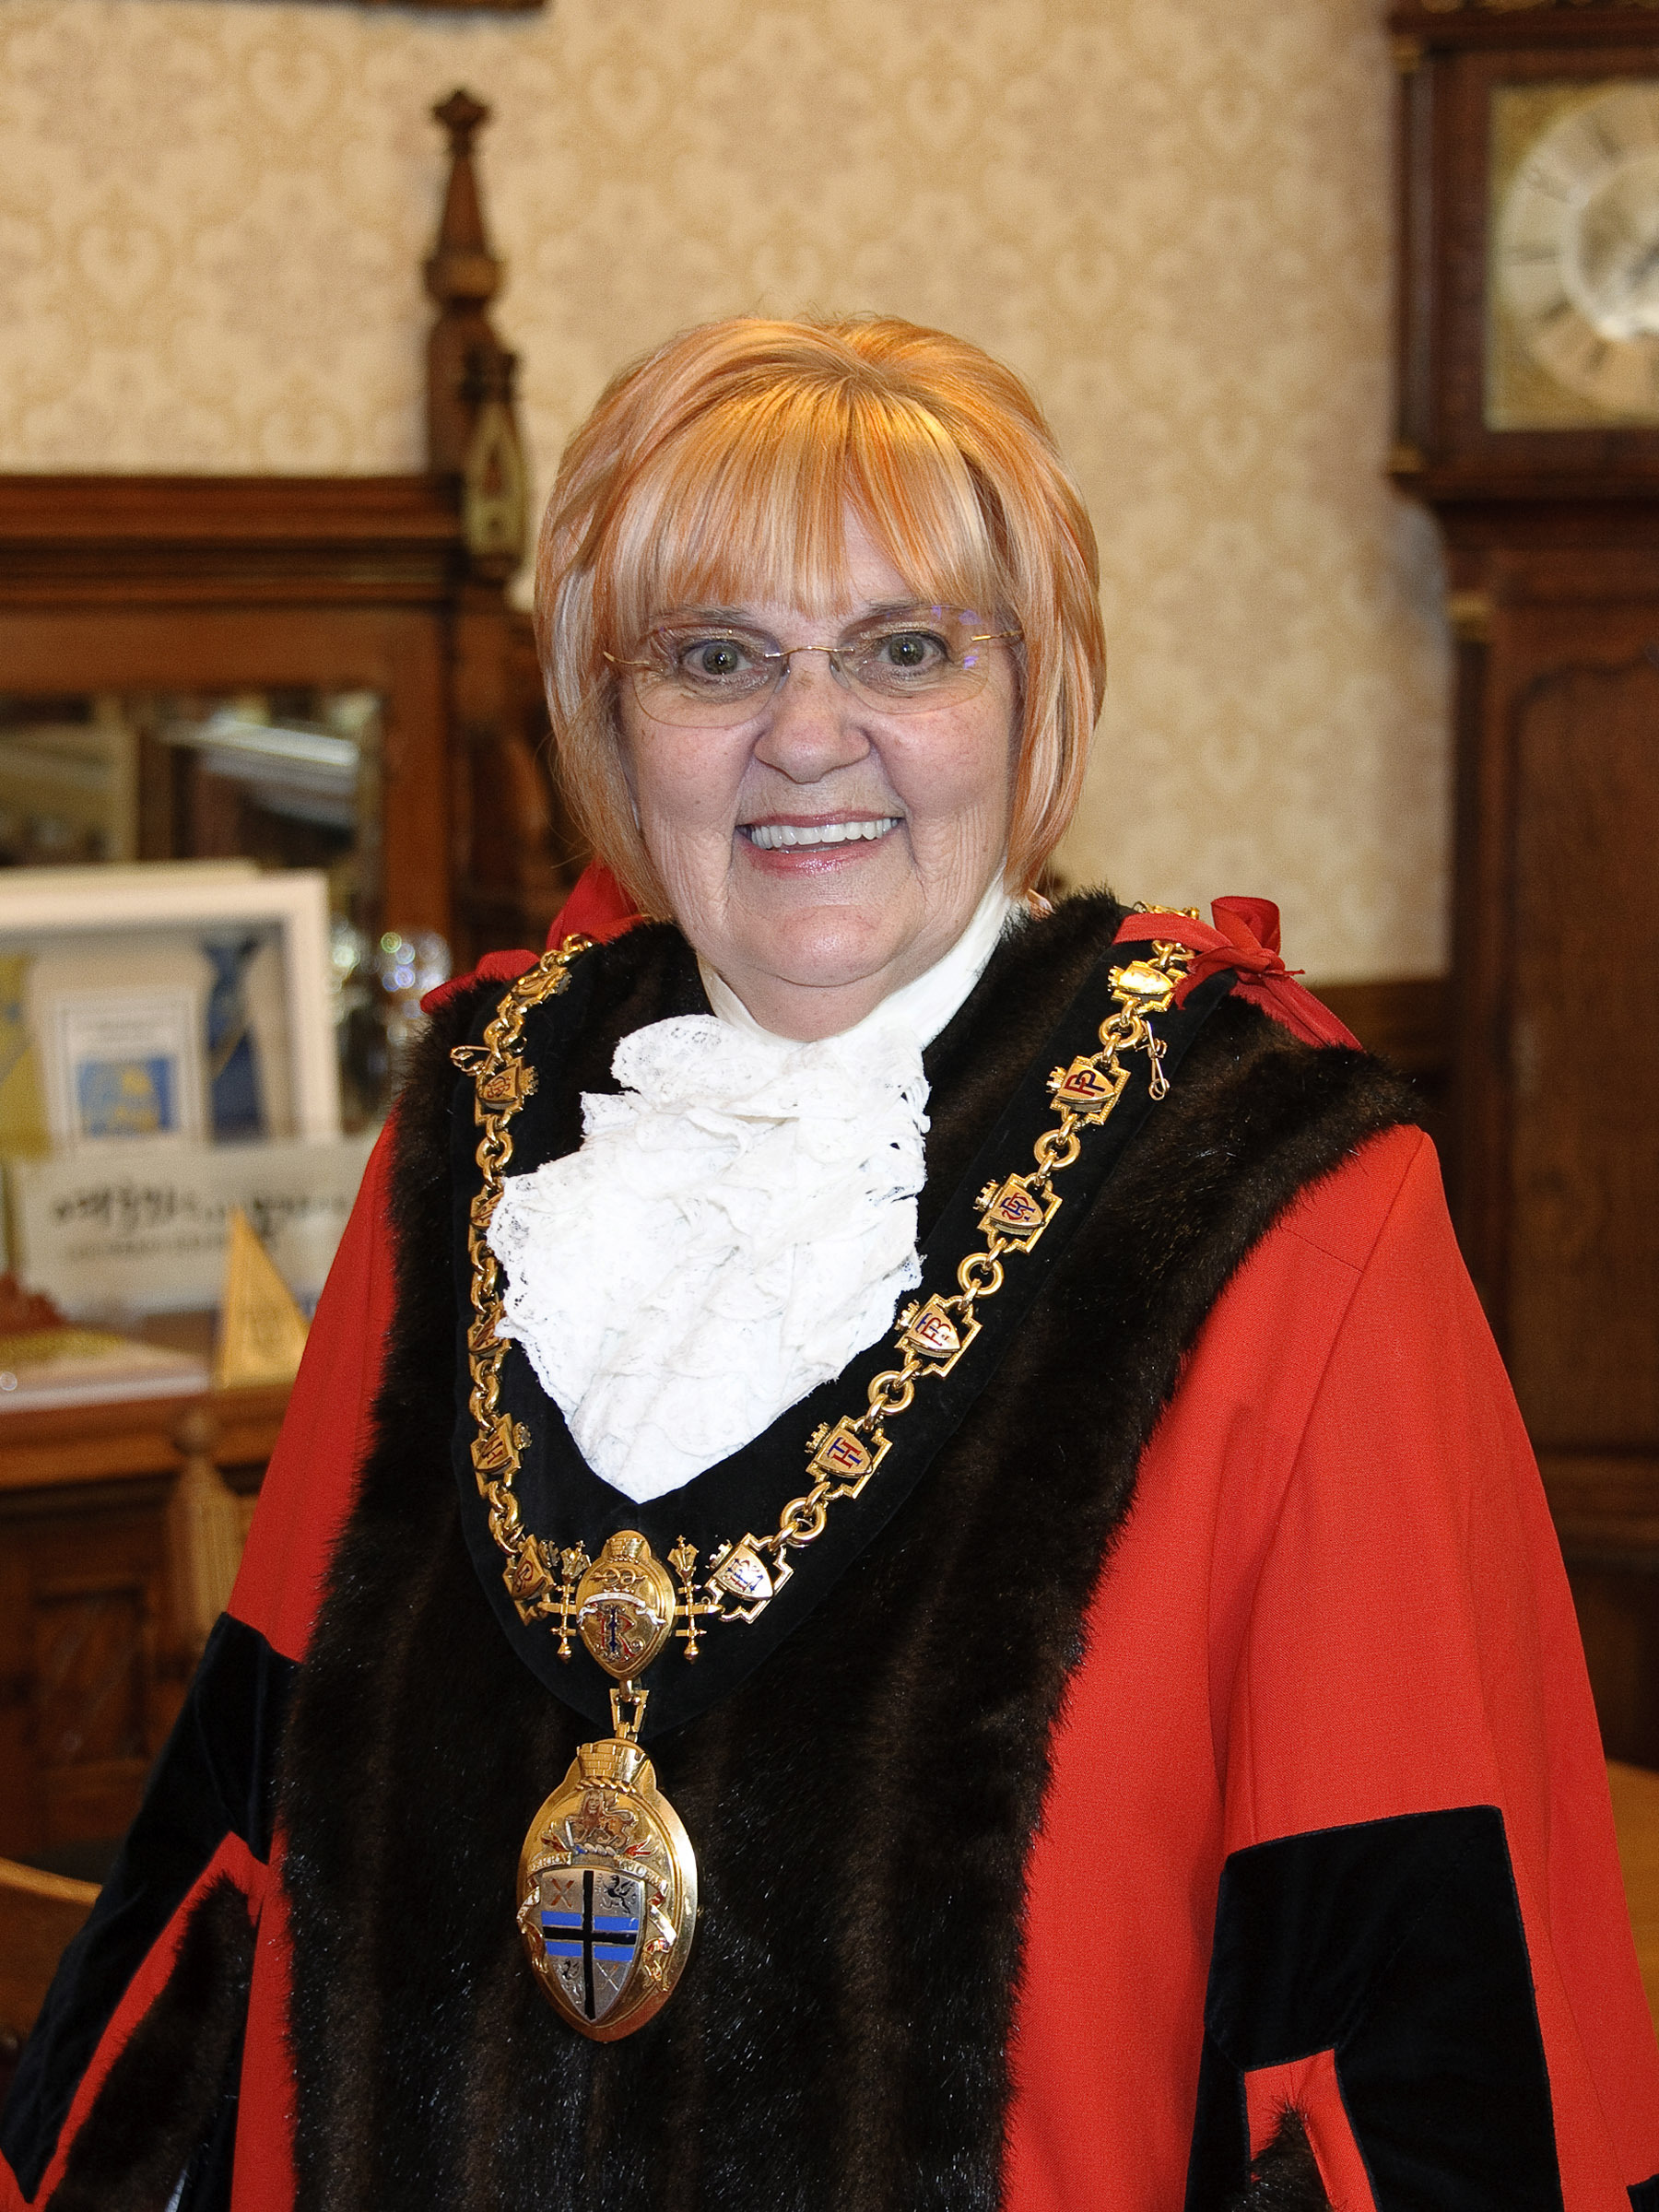 Cllr Ireland has spoken of her pride after being appointed Mayor of her hometown